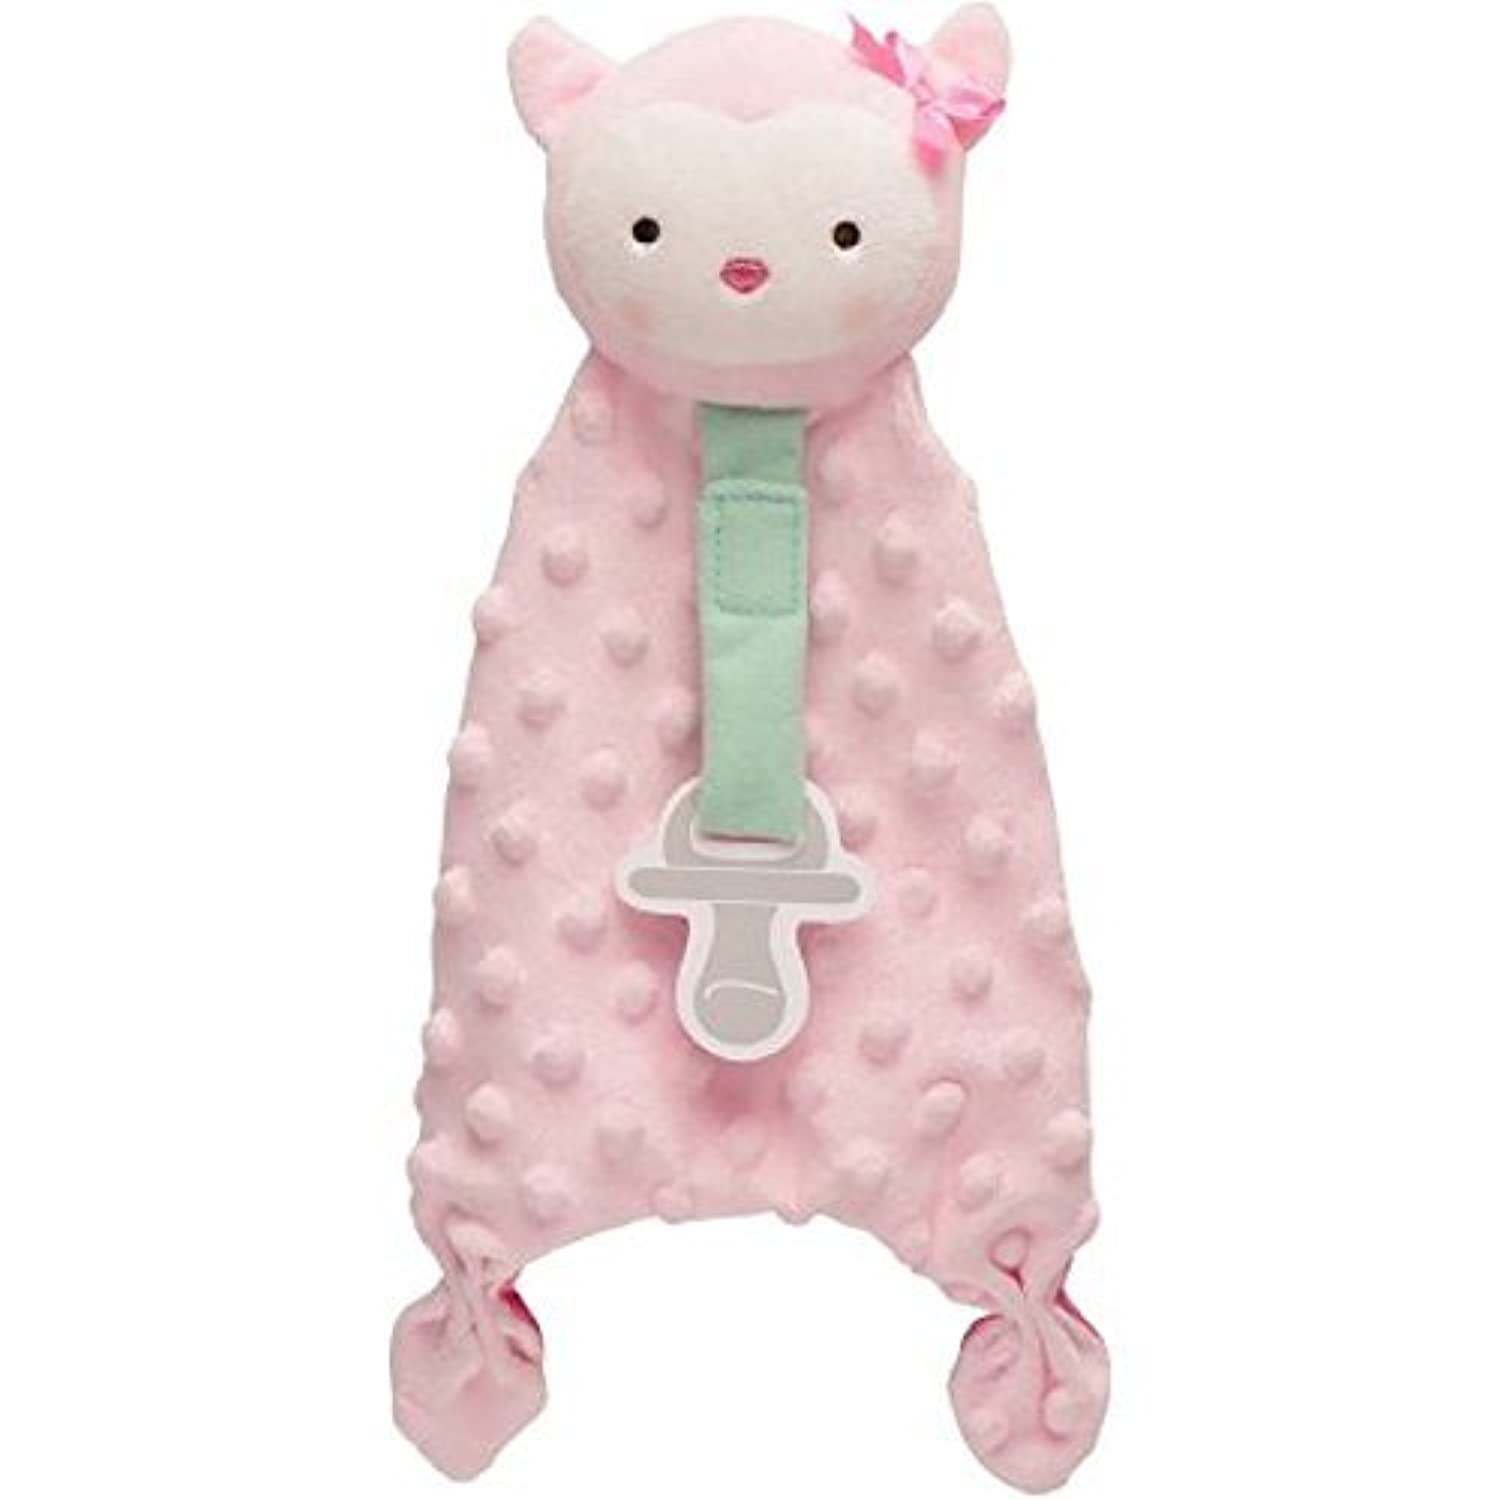 Carters Child of Mine Security Blanket with Paci Strip (Pink Owl) [並行輸入品]